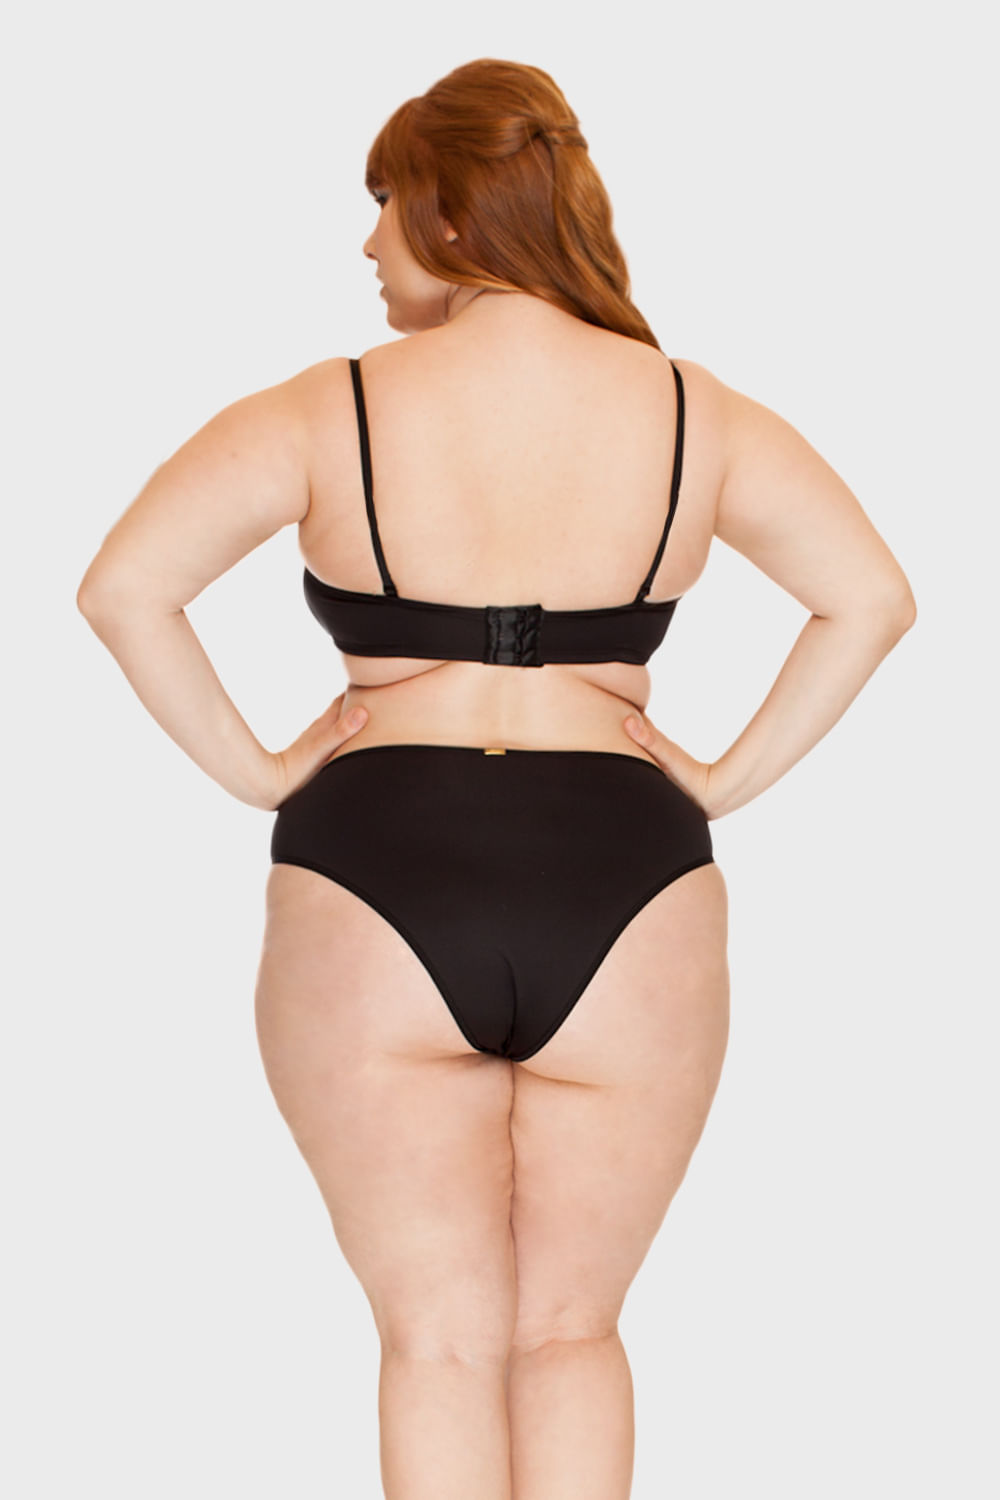 Calcinha-Laterais-Largas-Plus-Size_5